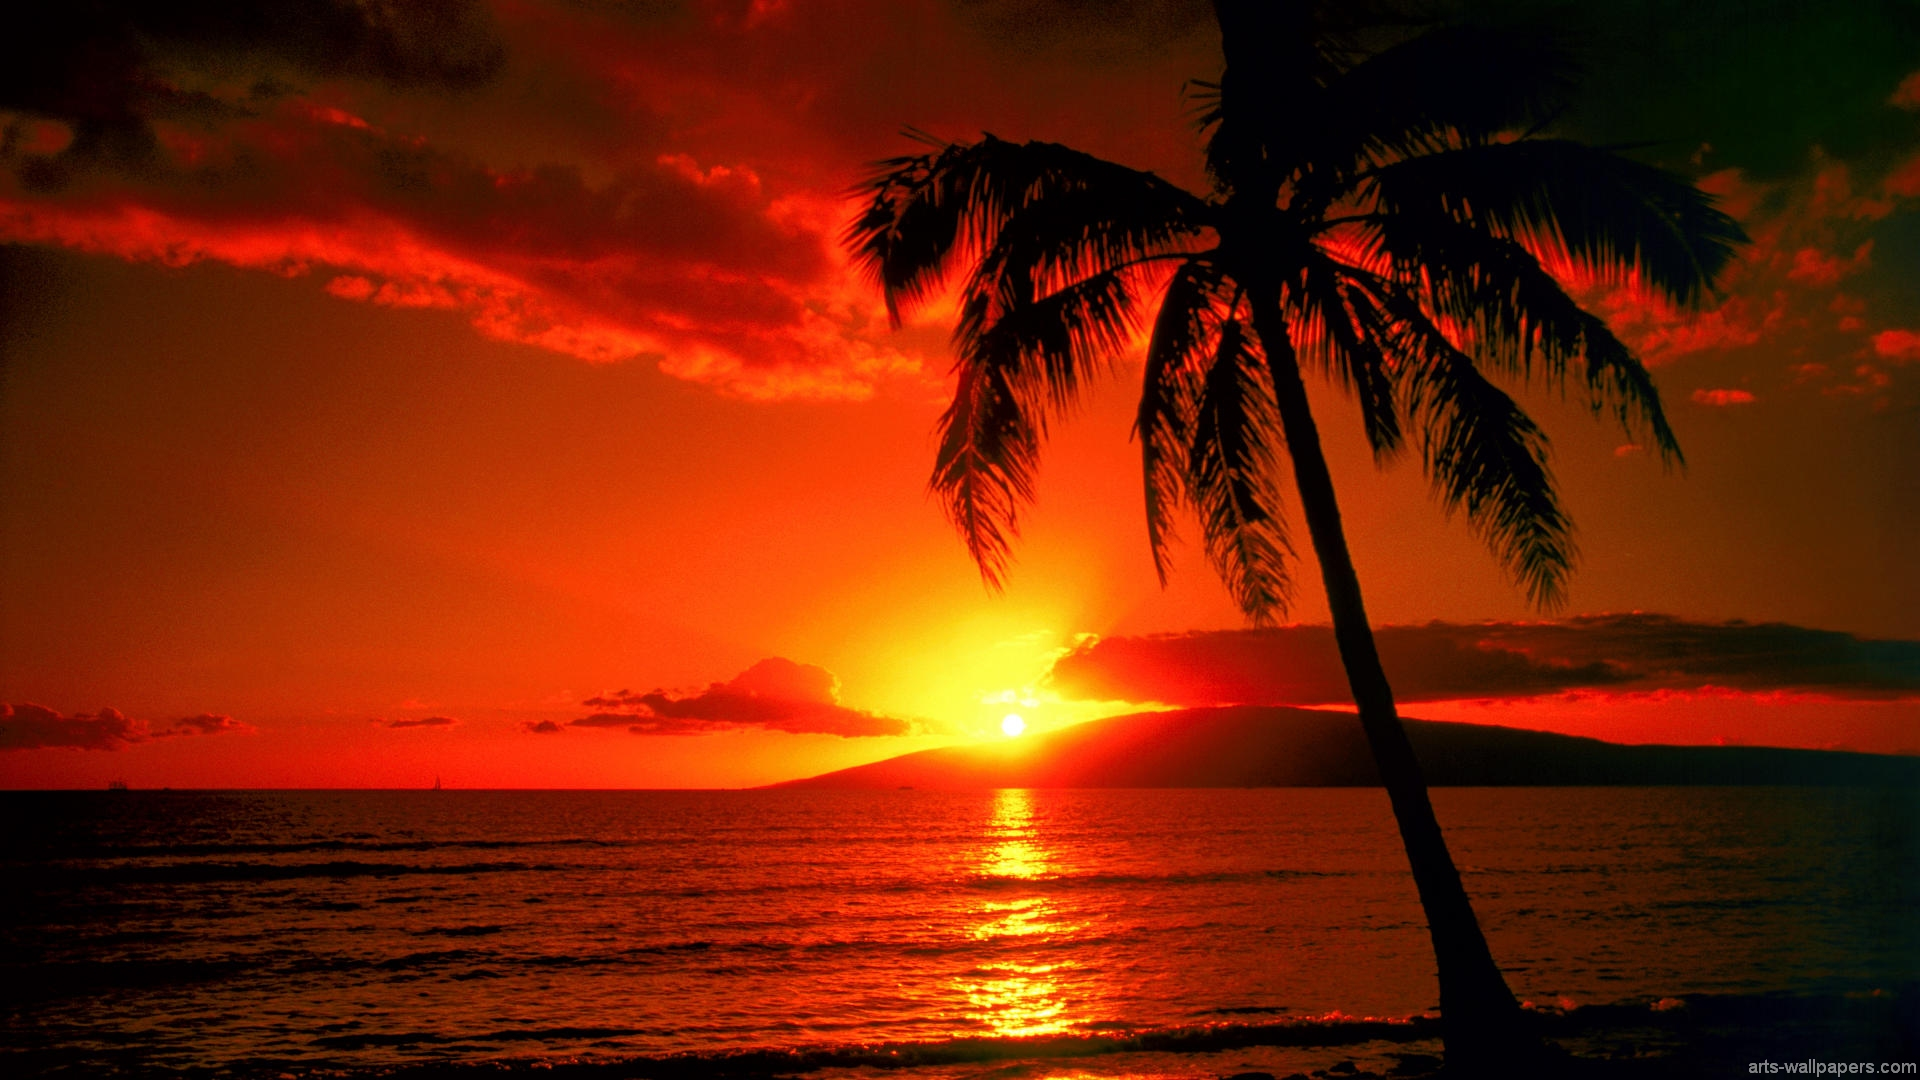 Drawn eiland sunset Paradise Sunset Island Tropical Tropical